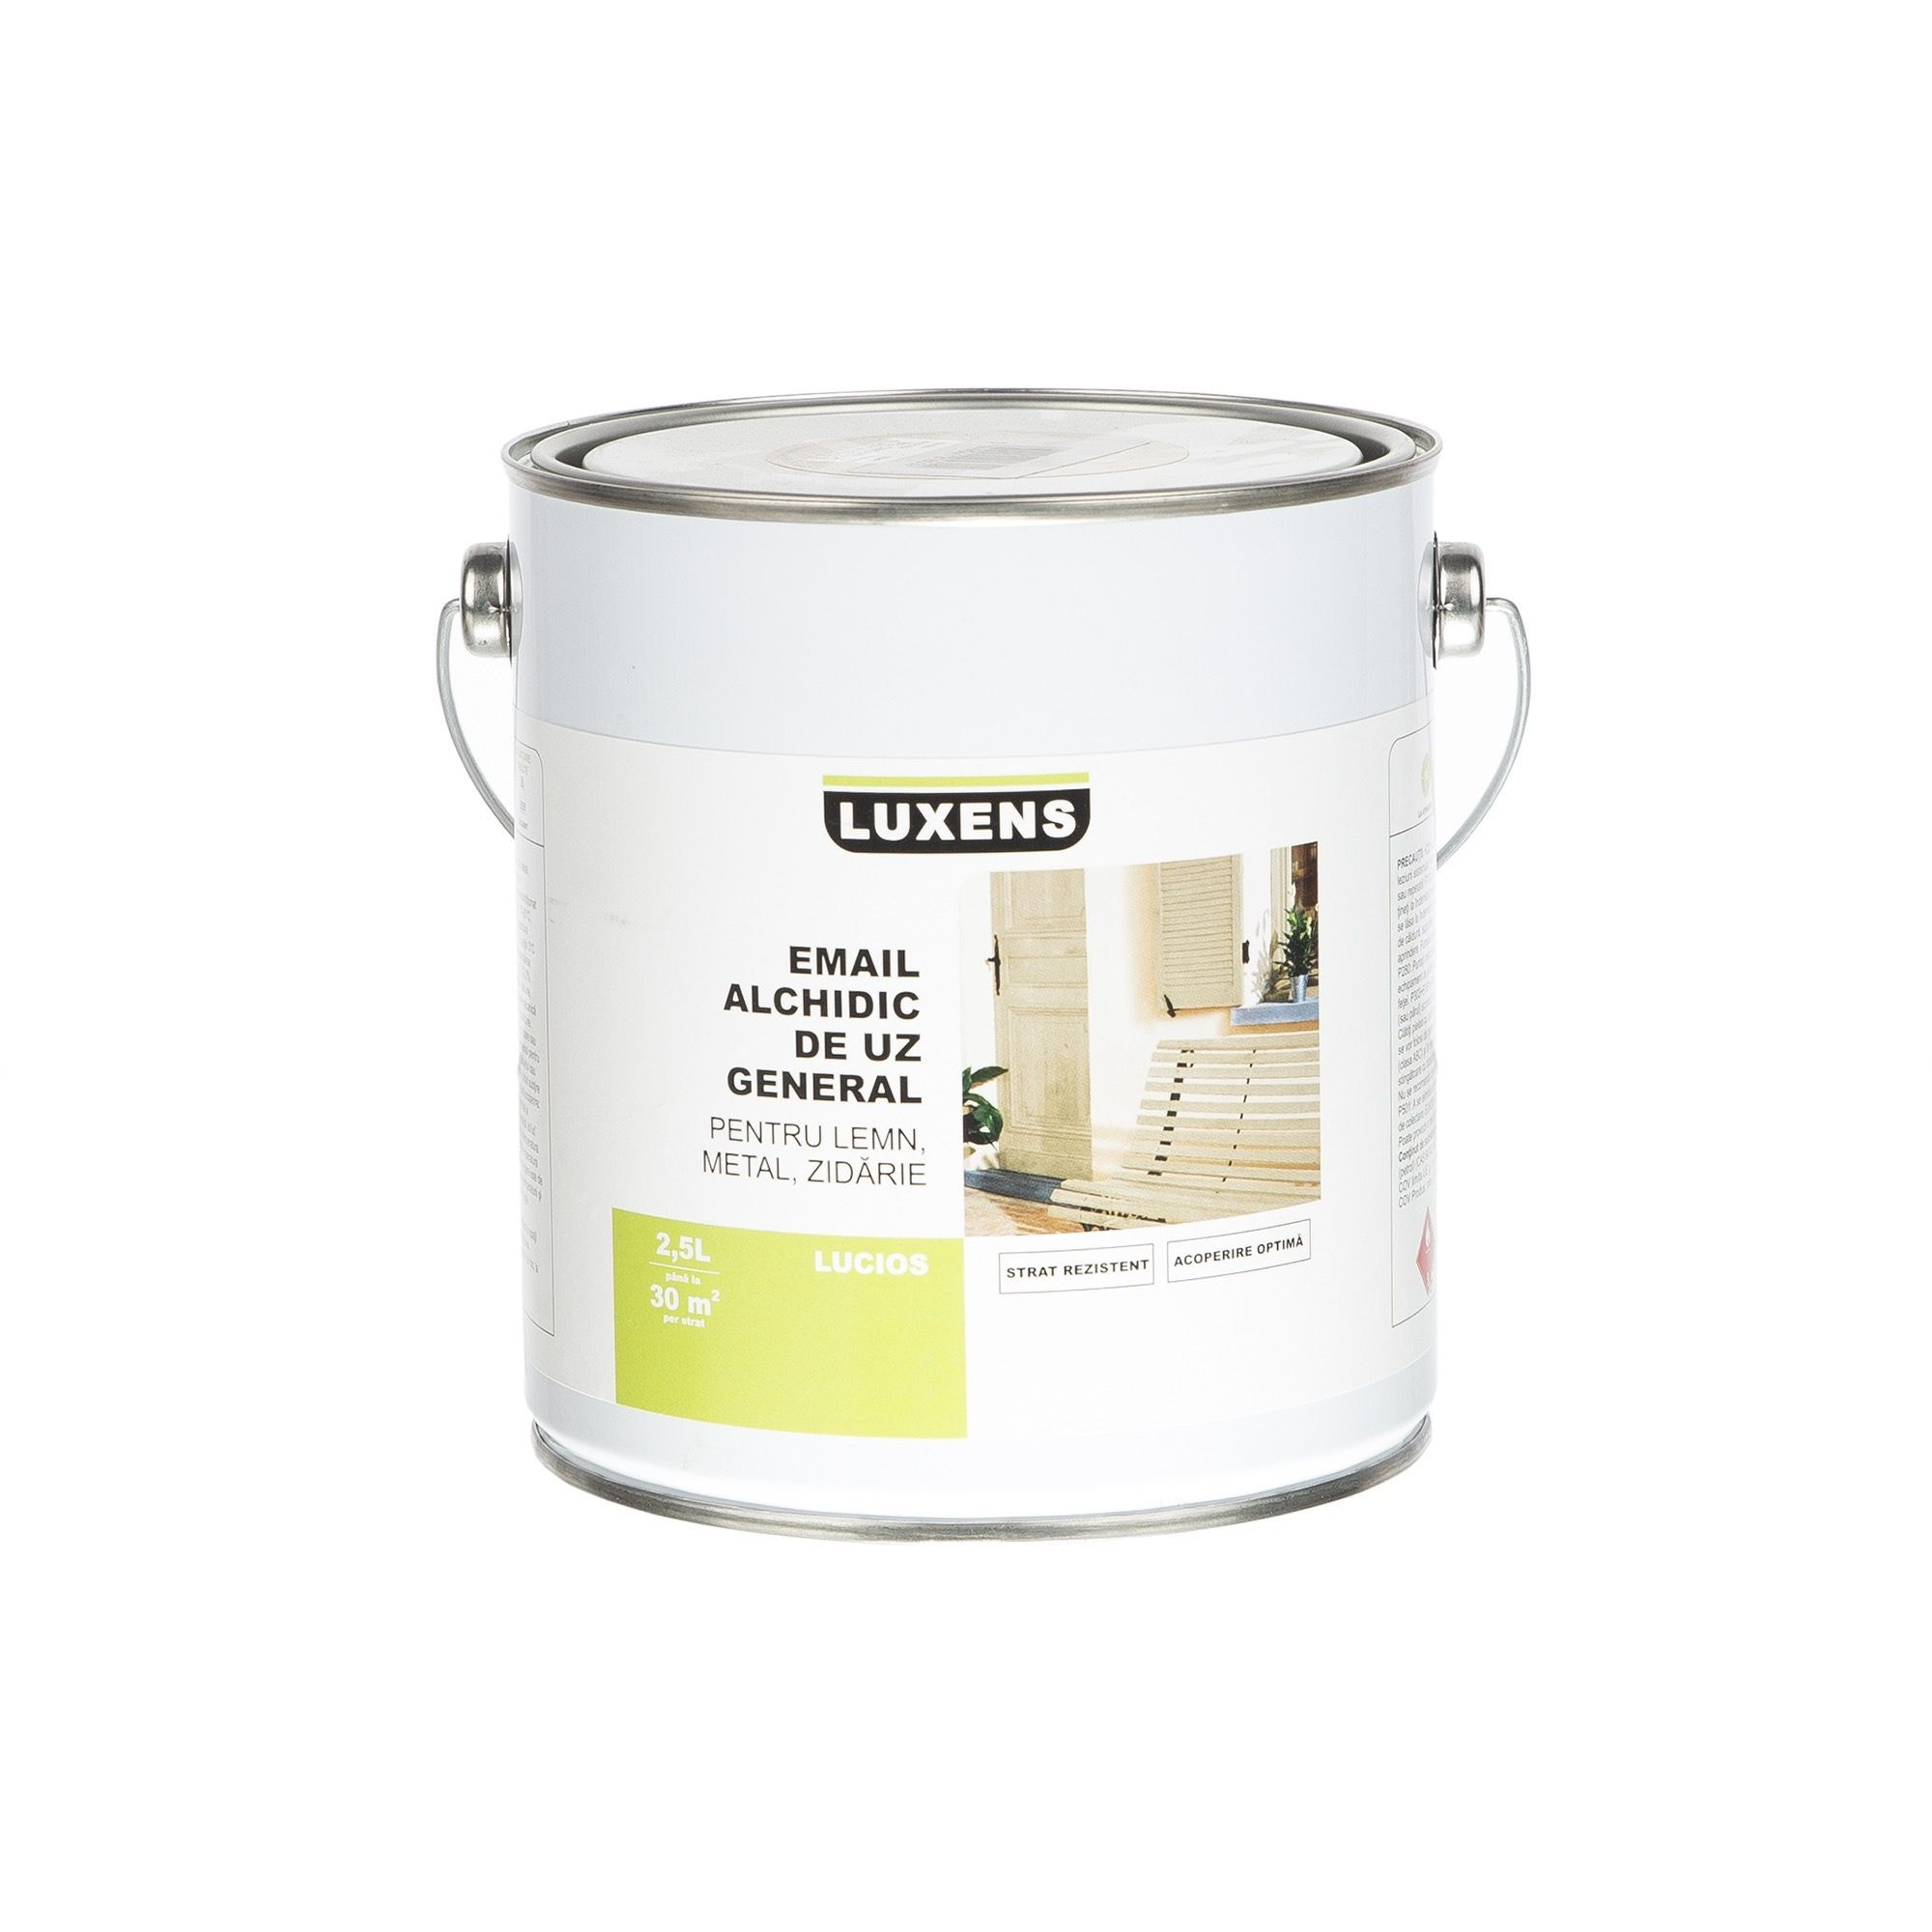 Email solvent Luxens gri antracit 2.5 l